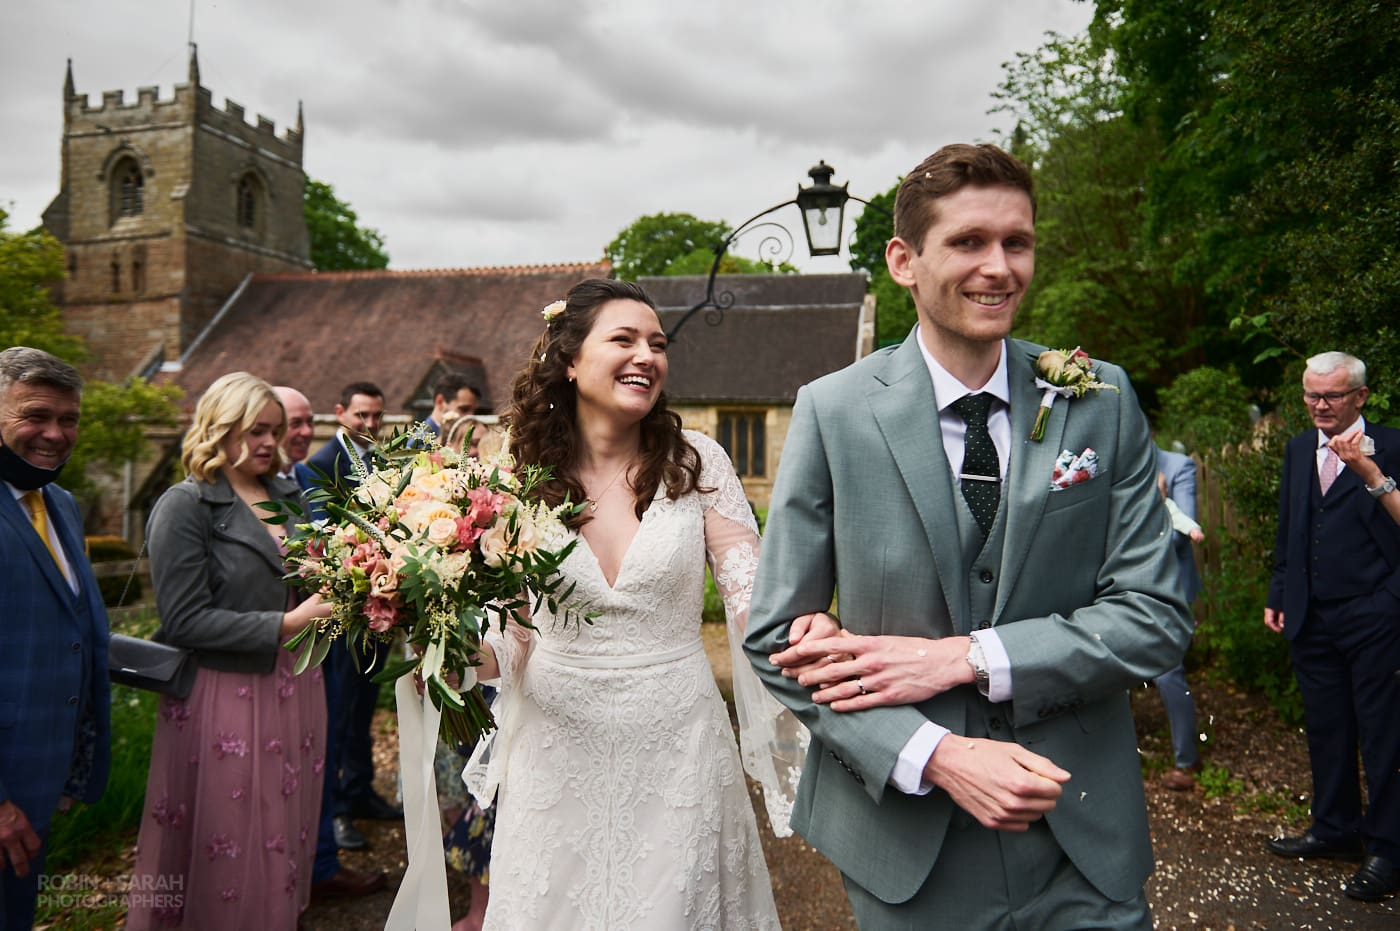 Newly married bride and groom walk as wedding guests throw confetti